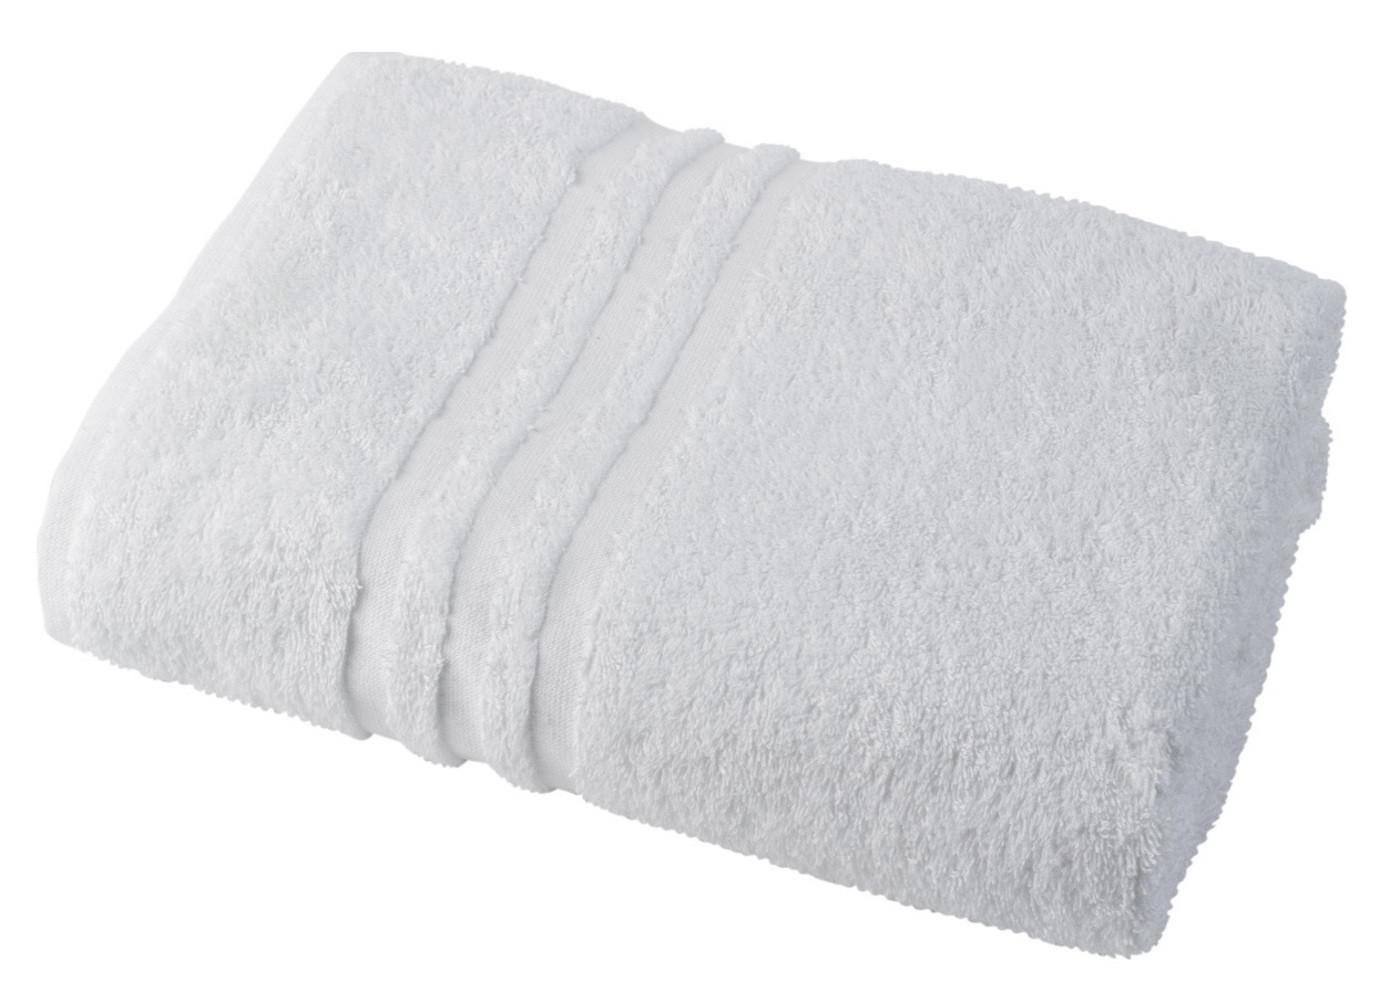 100 Cotton 500gsm Luxury Plain Dyed Towels Soft Absorbent